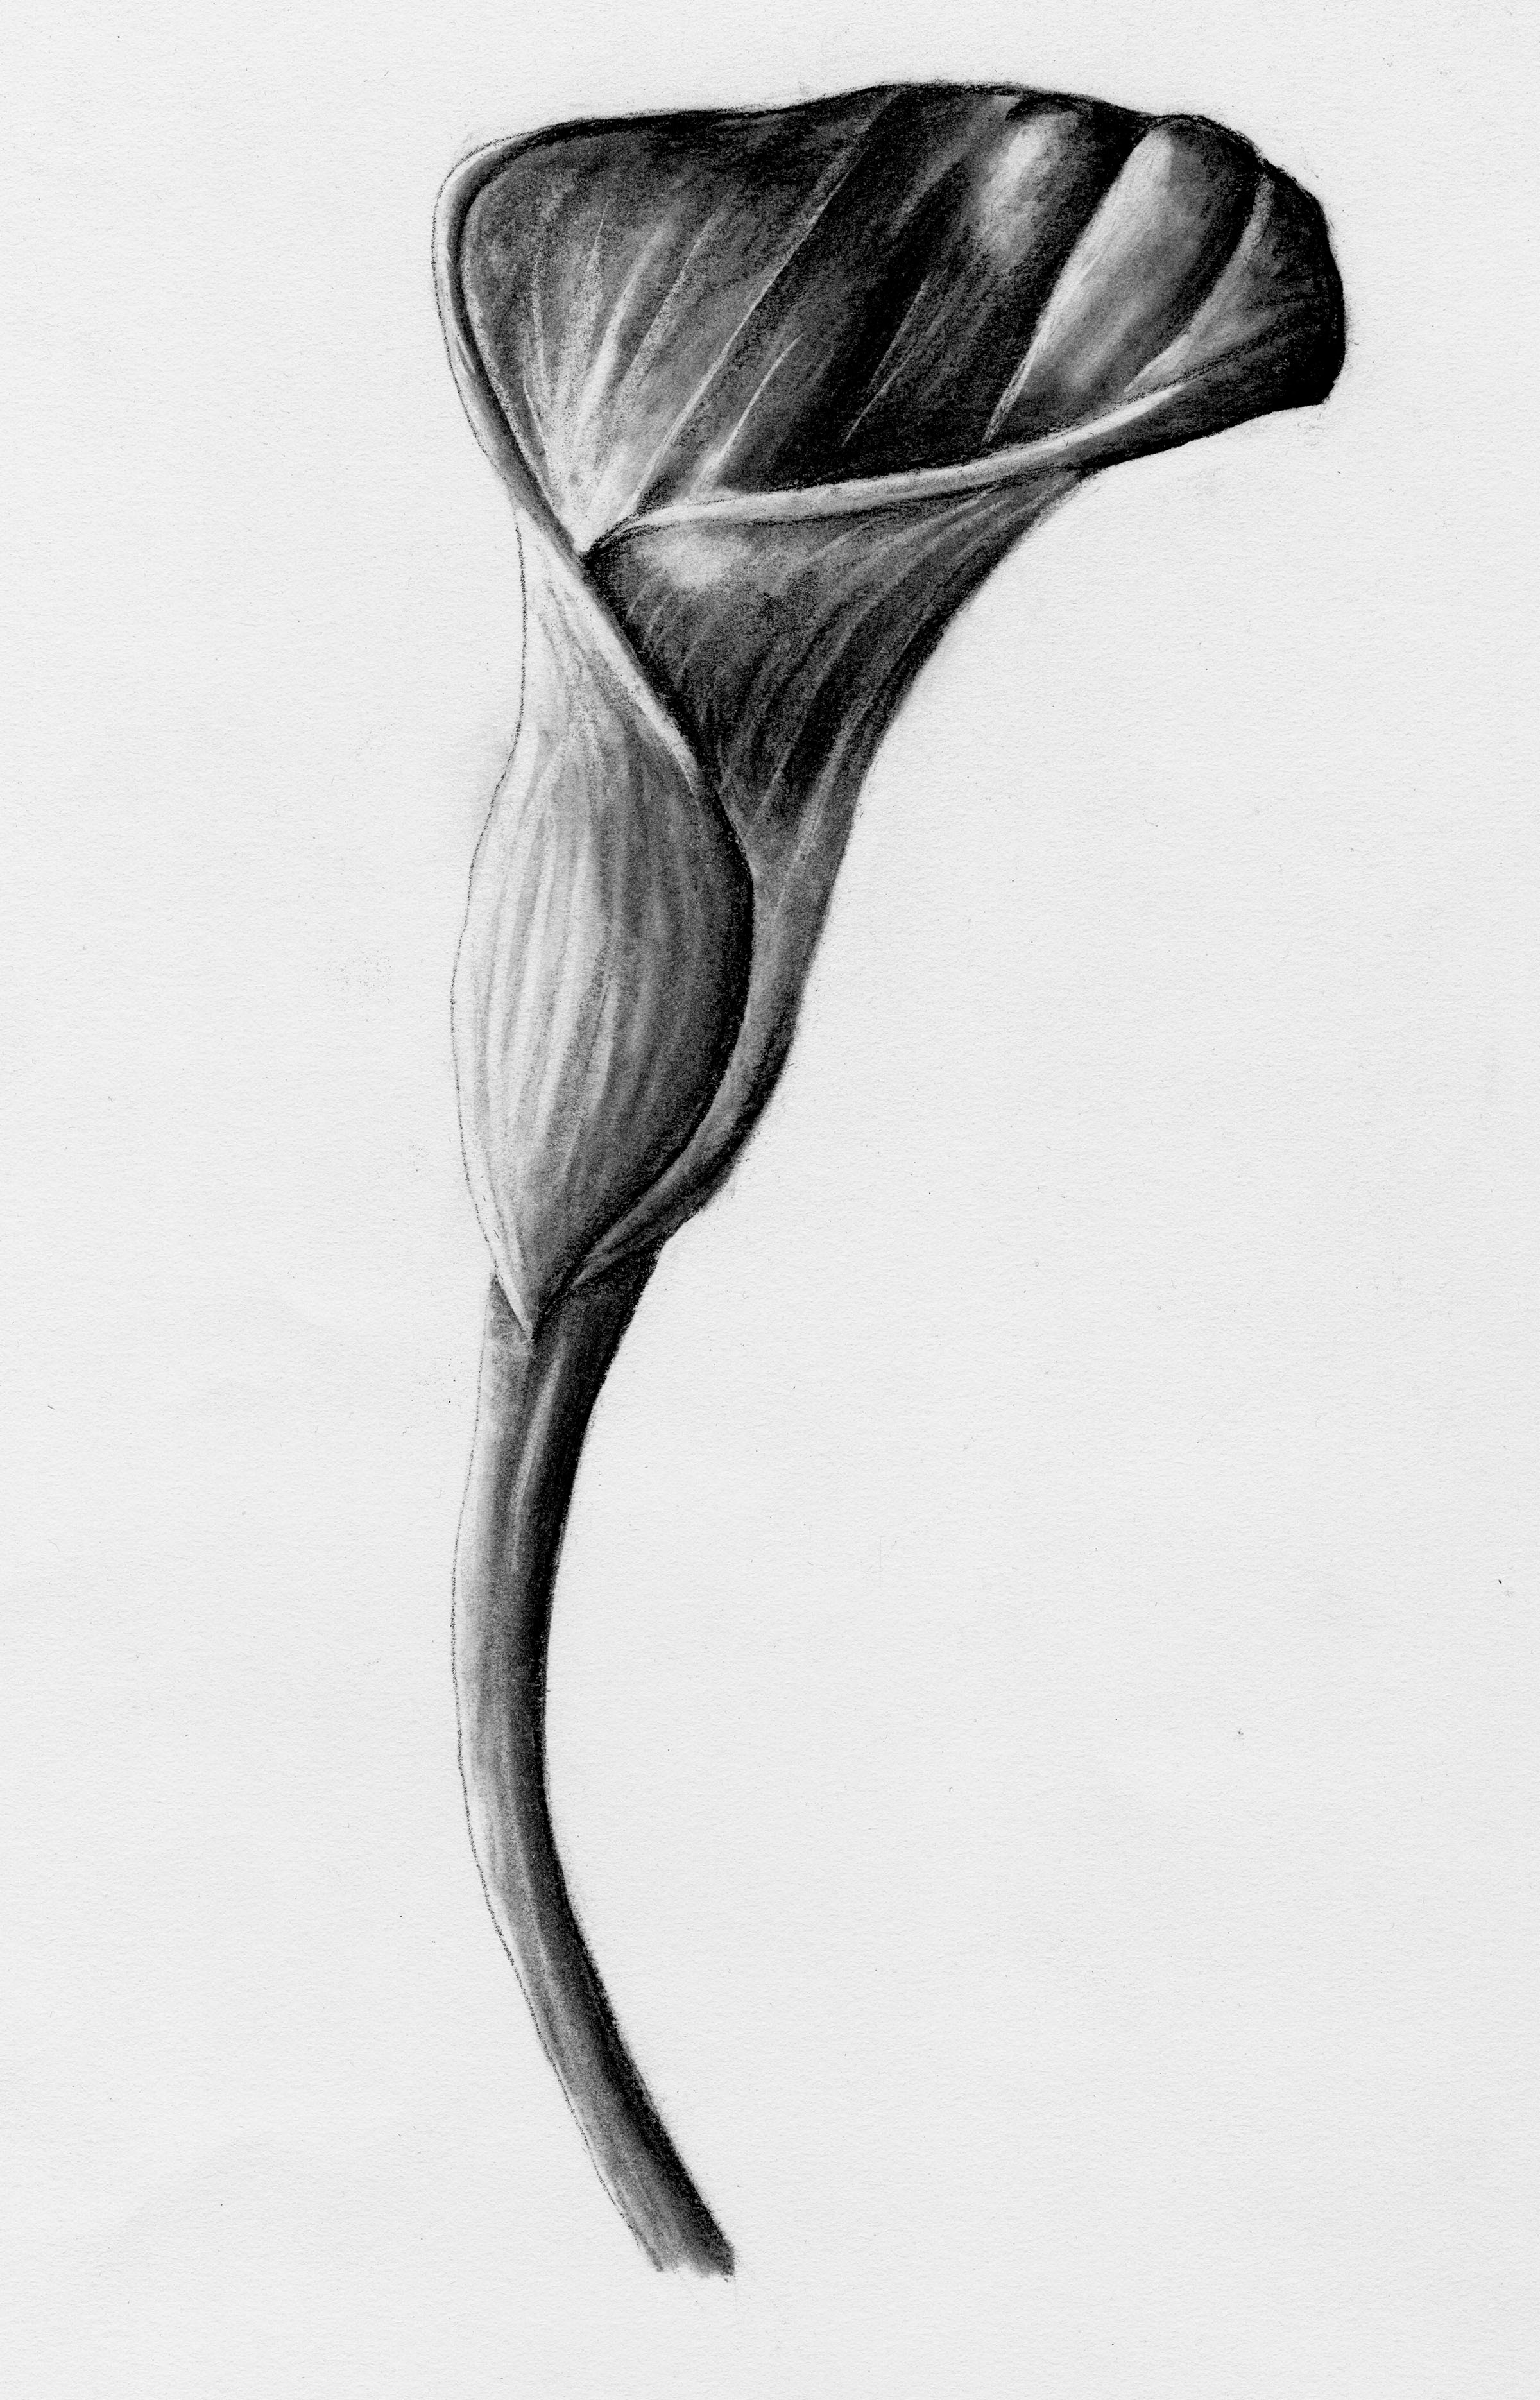 Charcoal rendering of a single calla lily.